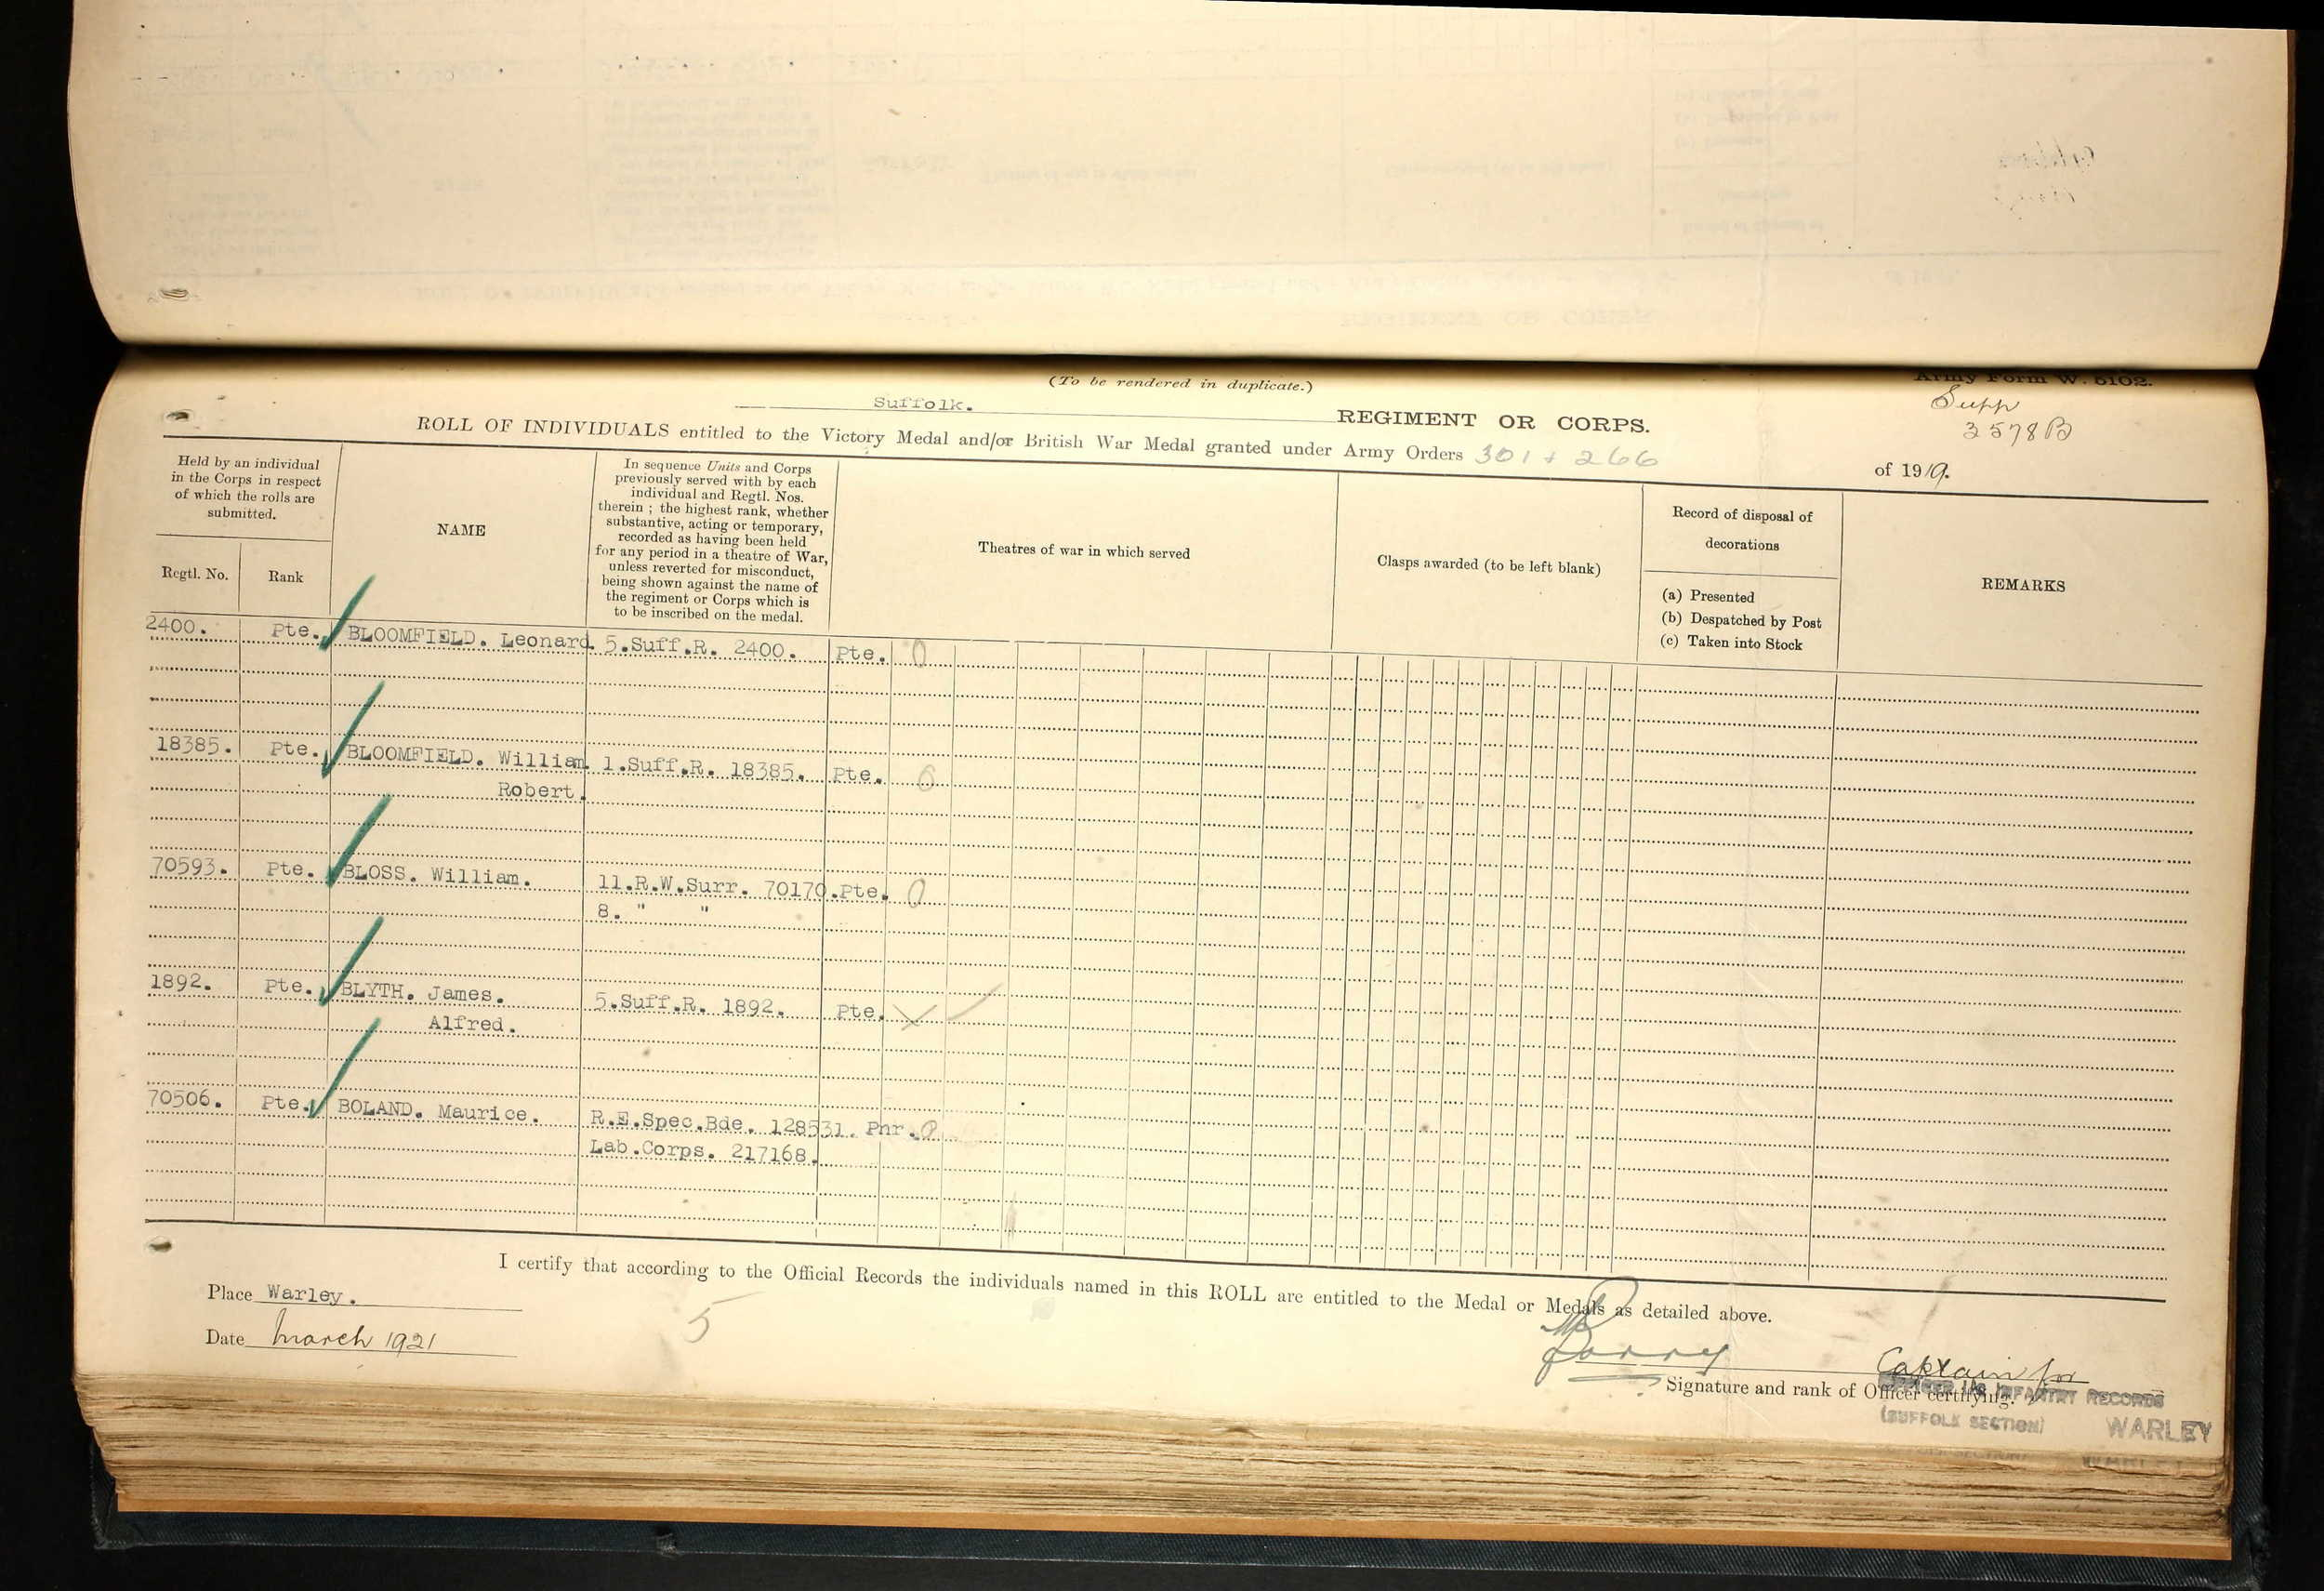 3 L Bloomfield victory & war medal book entry.jpg